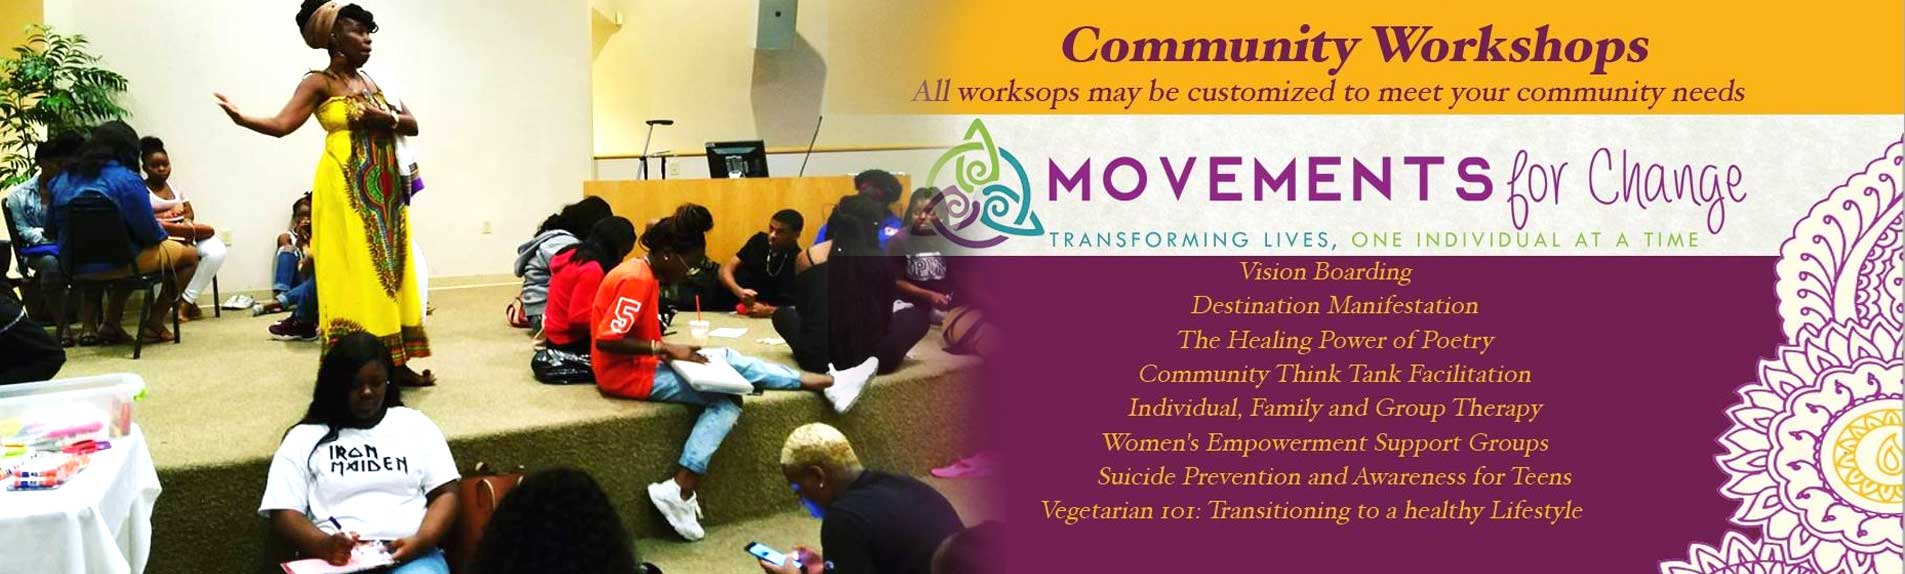 Movements for Change, LLC